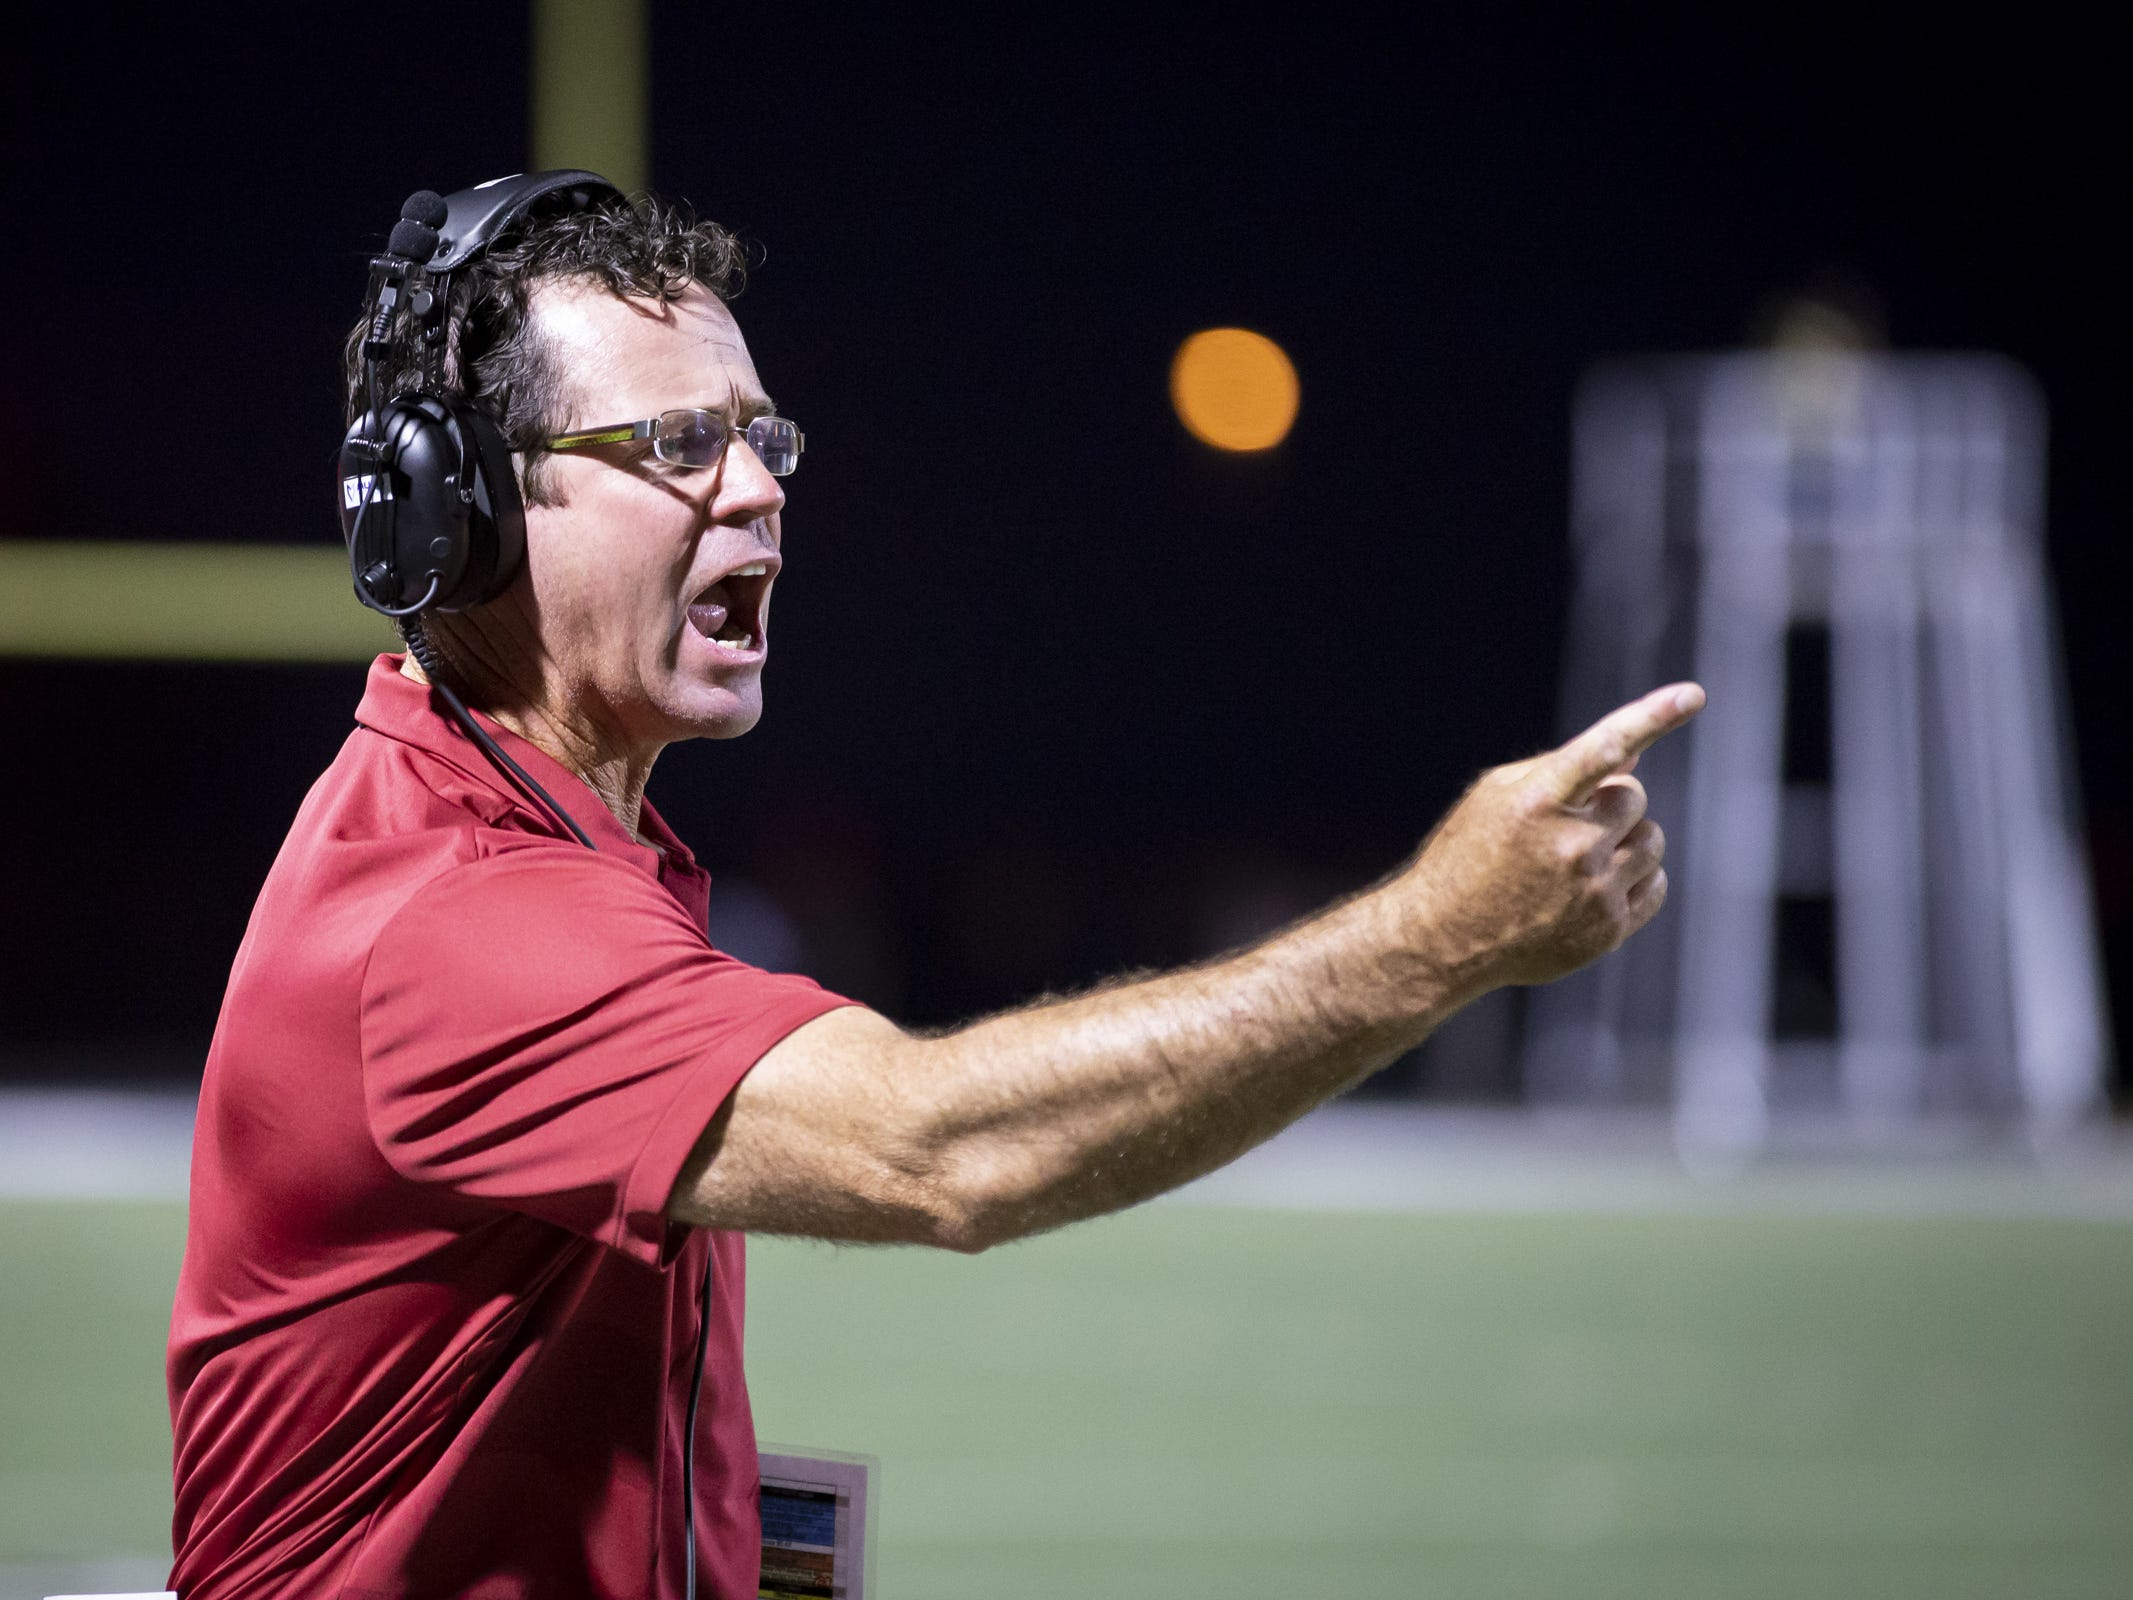 Head coach Preston Jones of the Perry Pumas motions during the game against the Pinnacle Pioneers at Pinnacle High School on Friday, August 17, 2018 in Phoenix, Arizona.